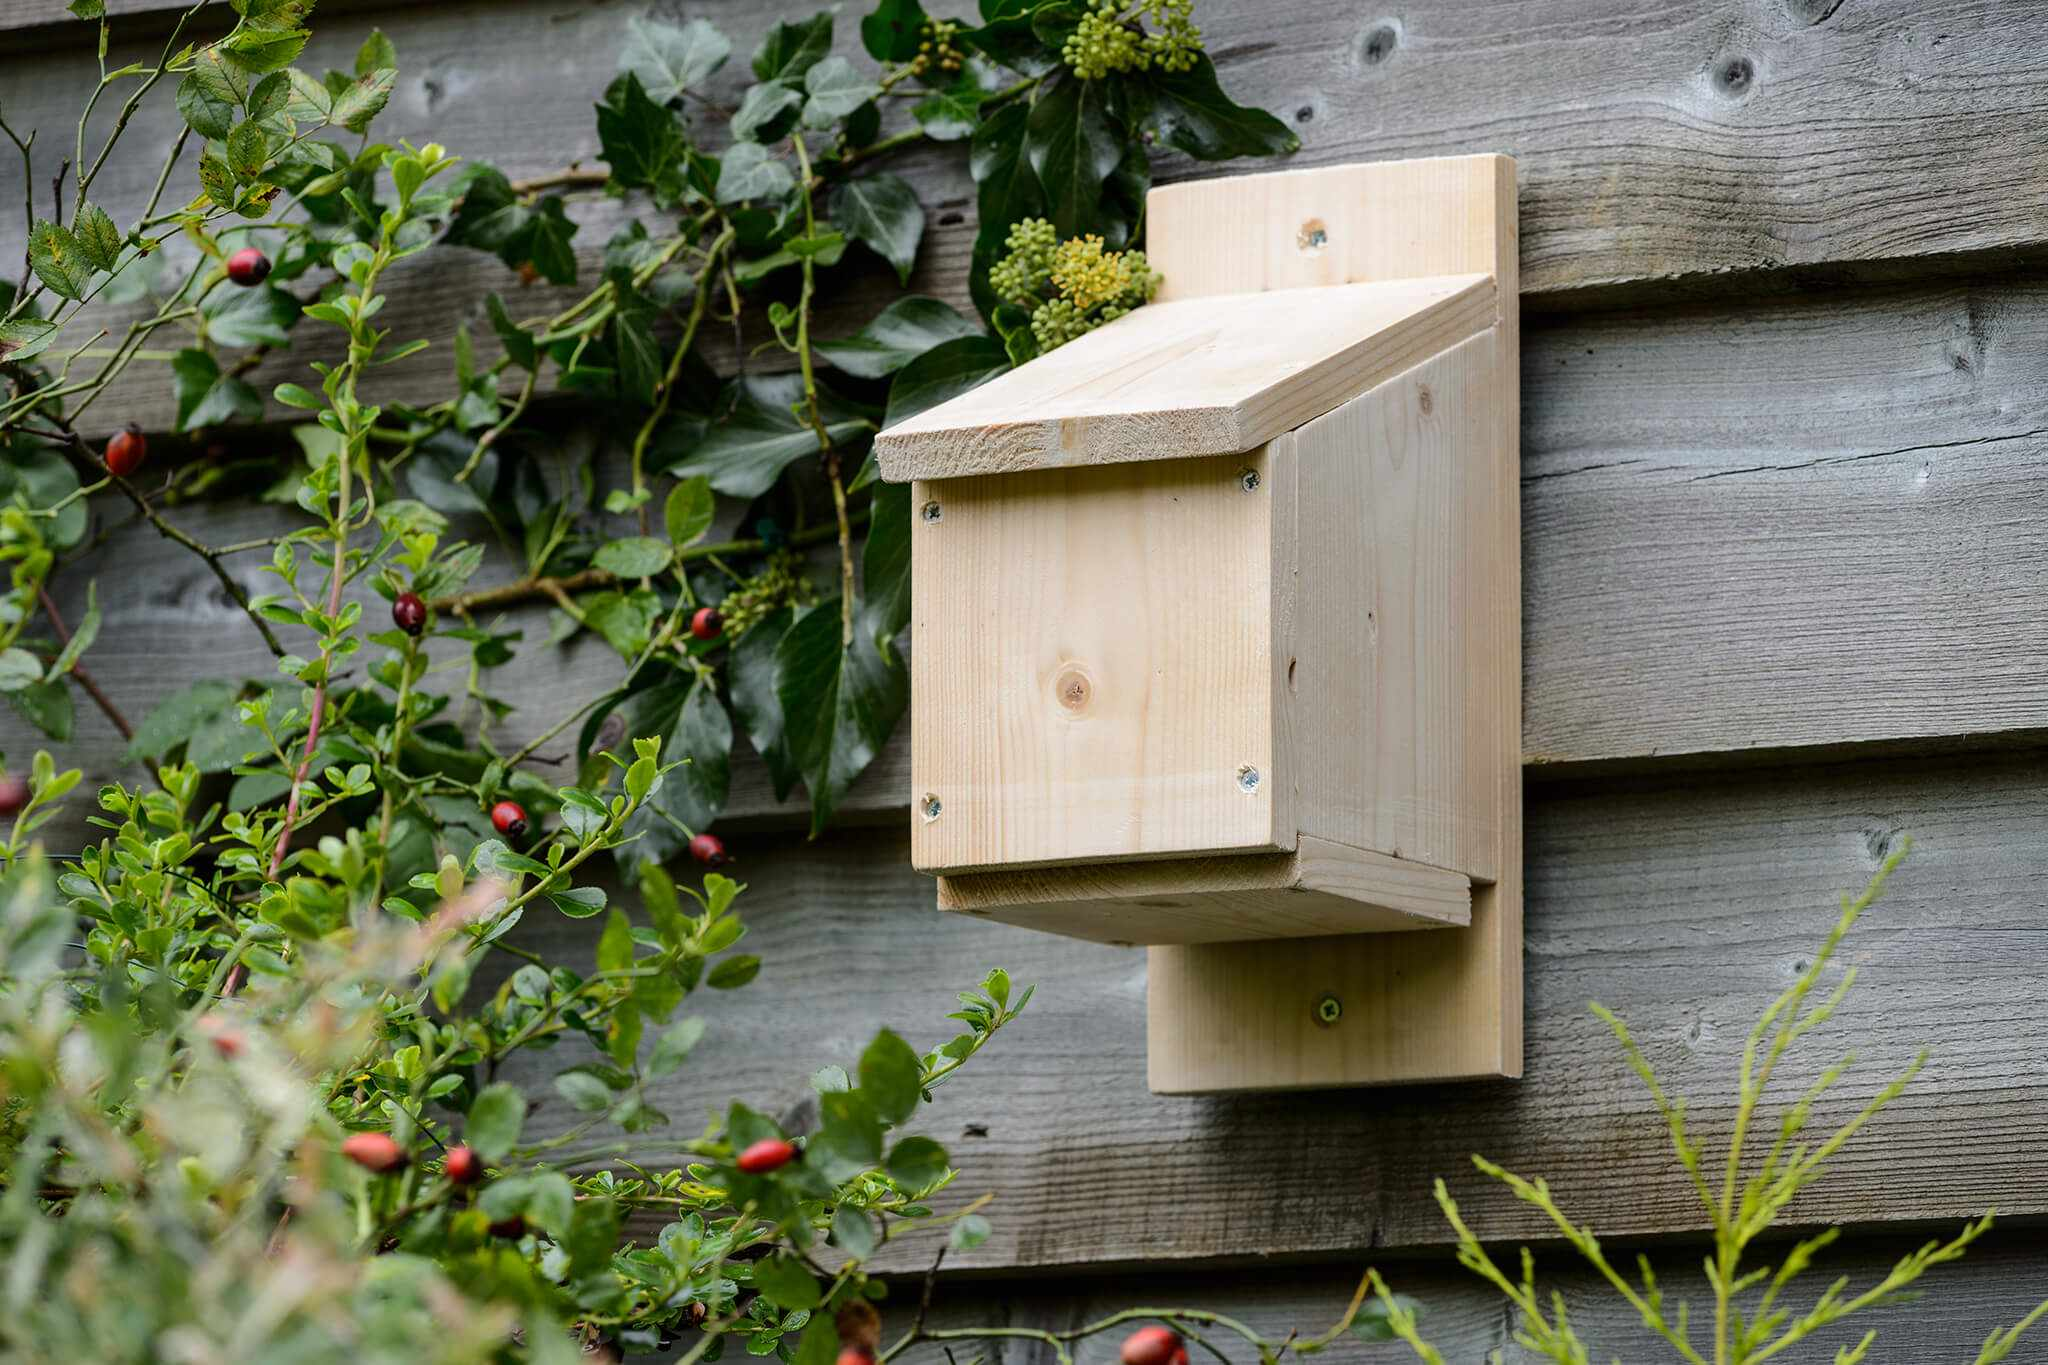 Make a Bat Box (step-by-step)